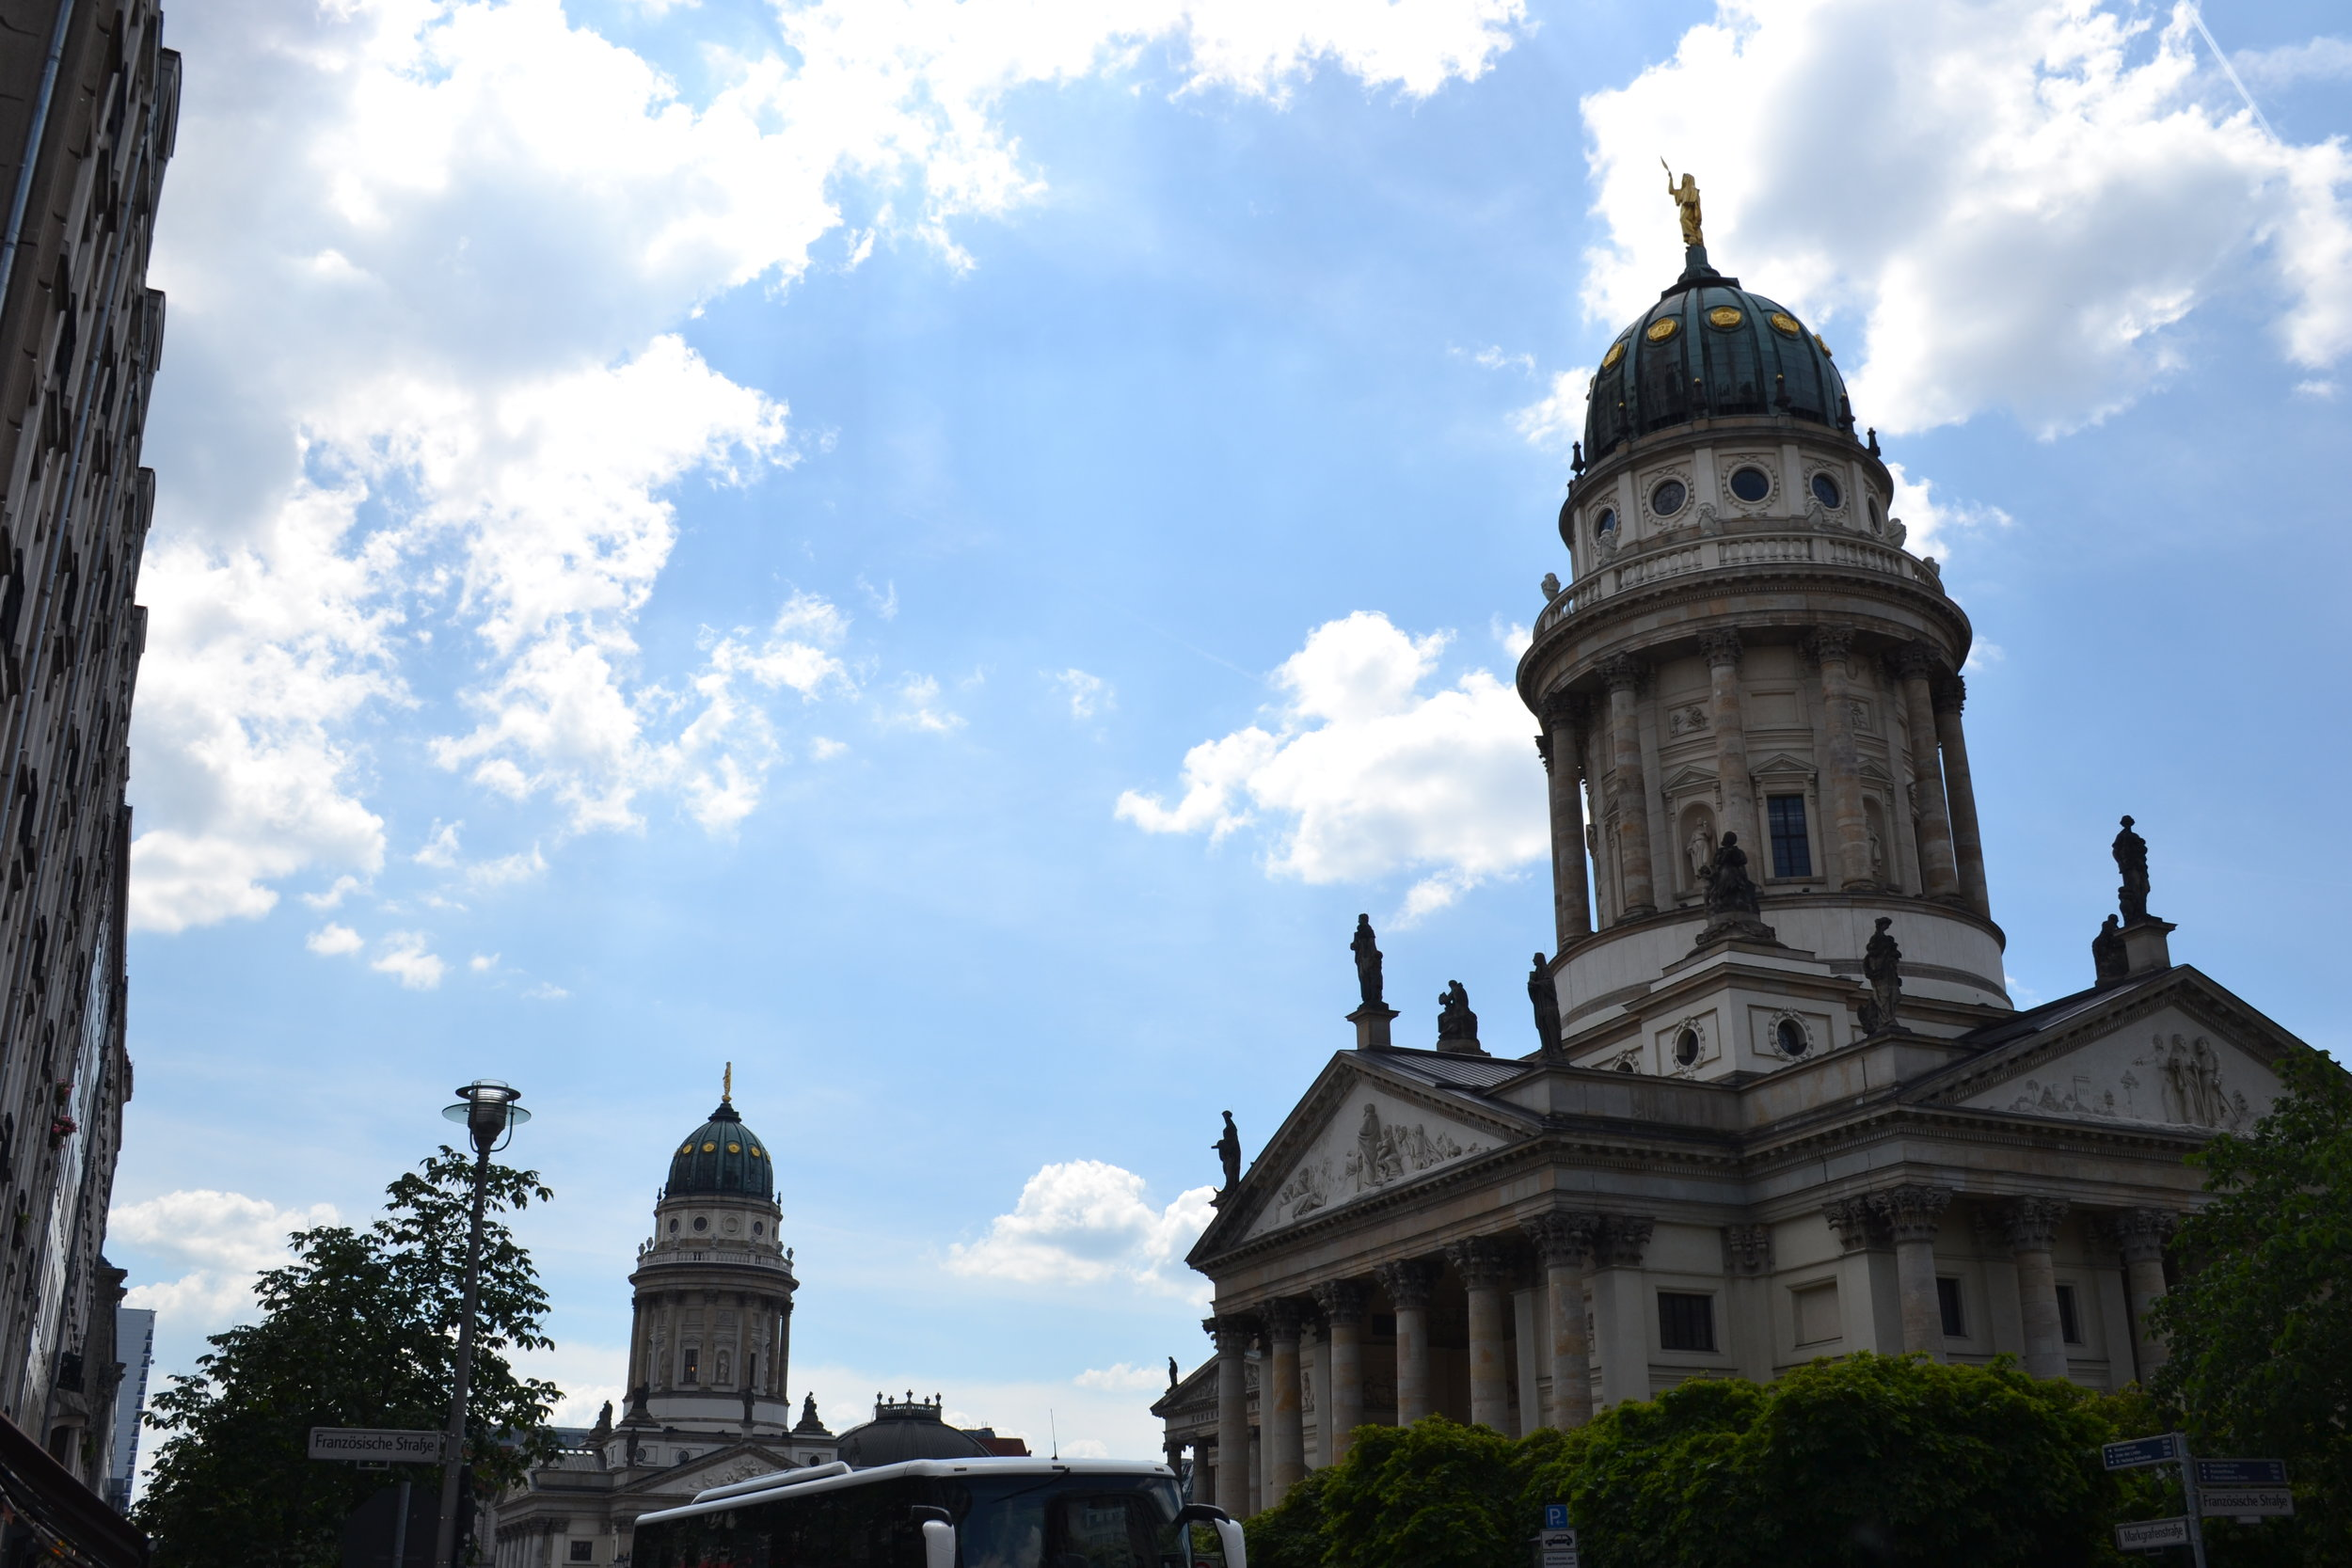 French Cathedral & German Cathedral